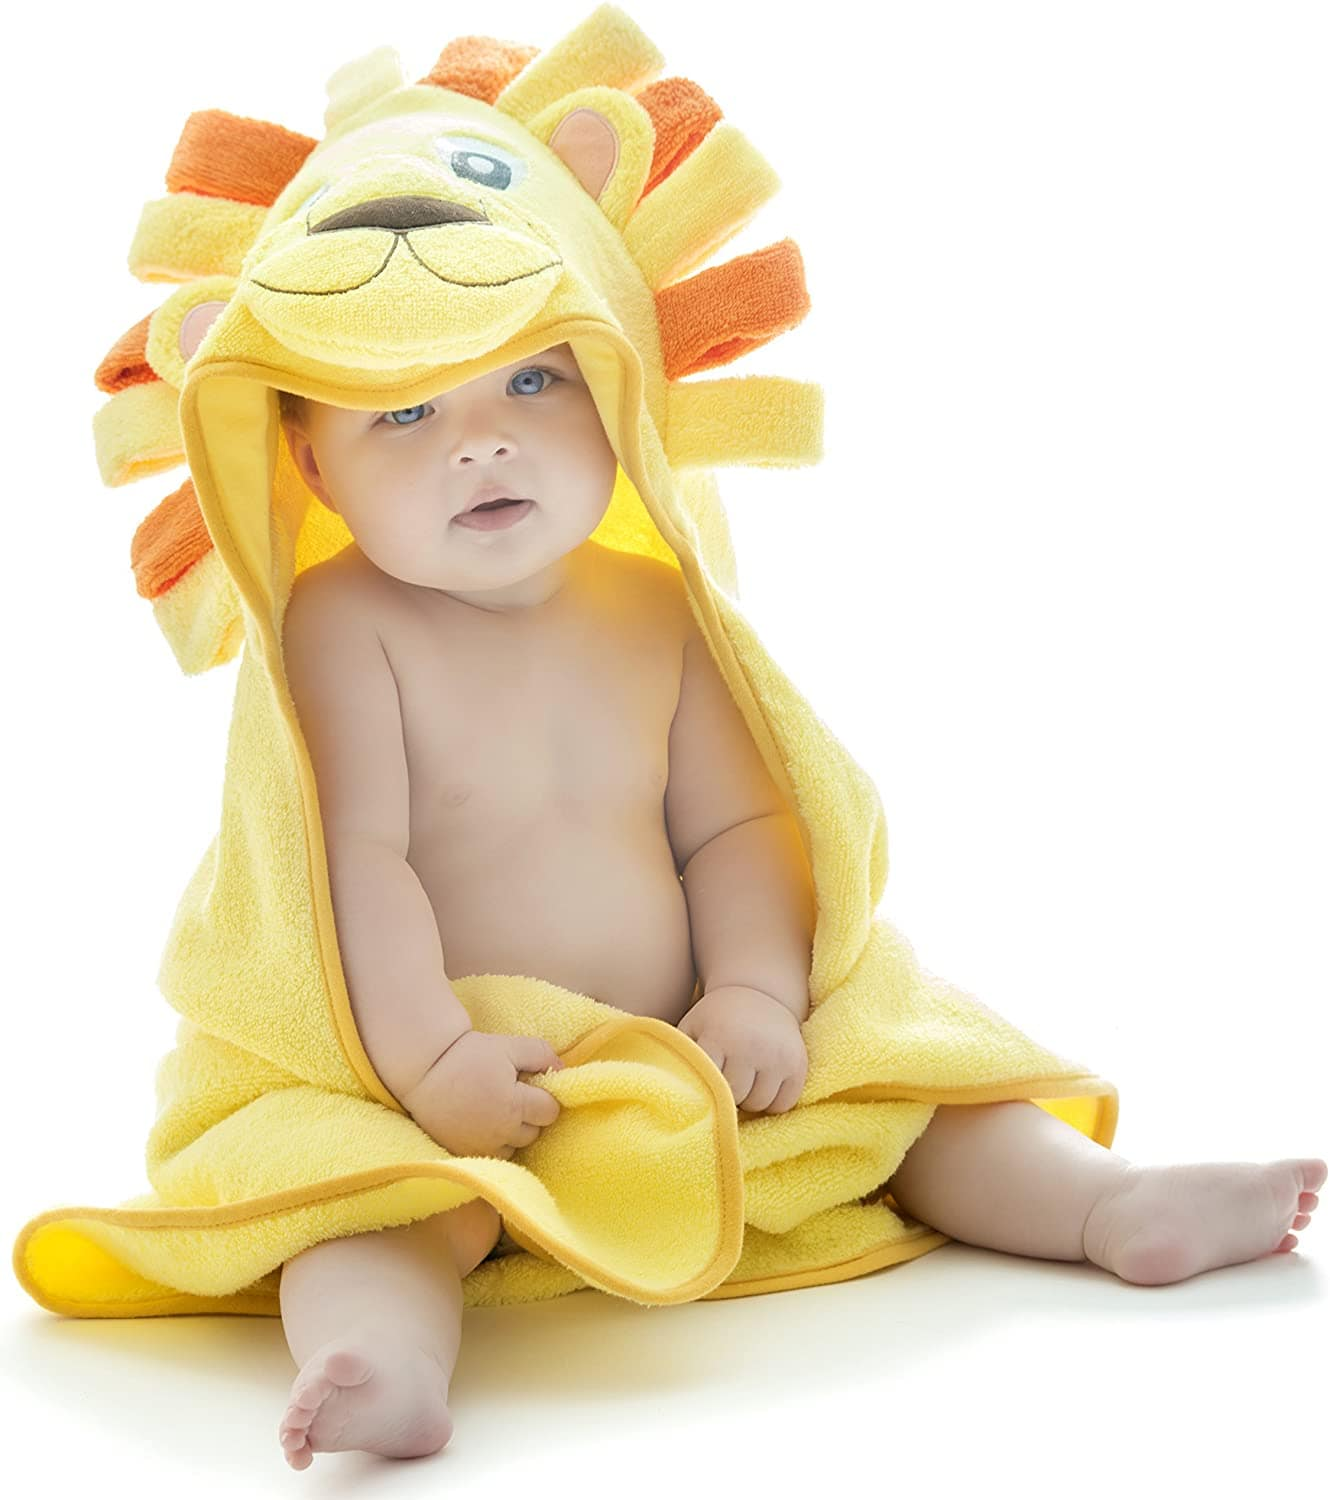 Little Tinkers world lion hooded baby towel.